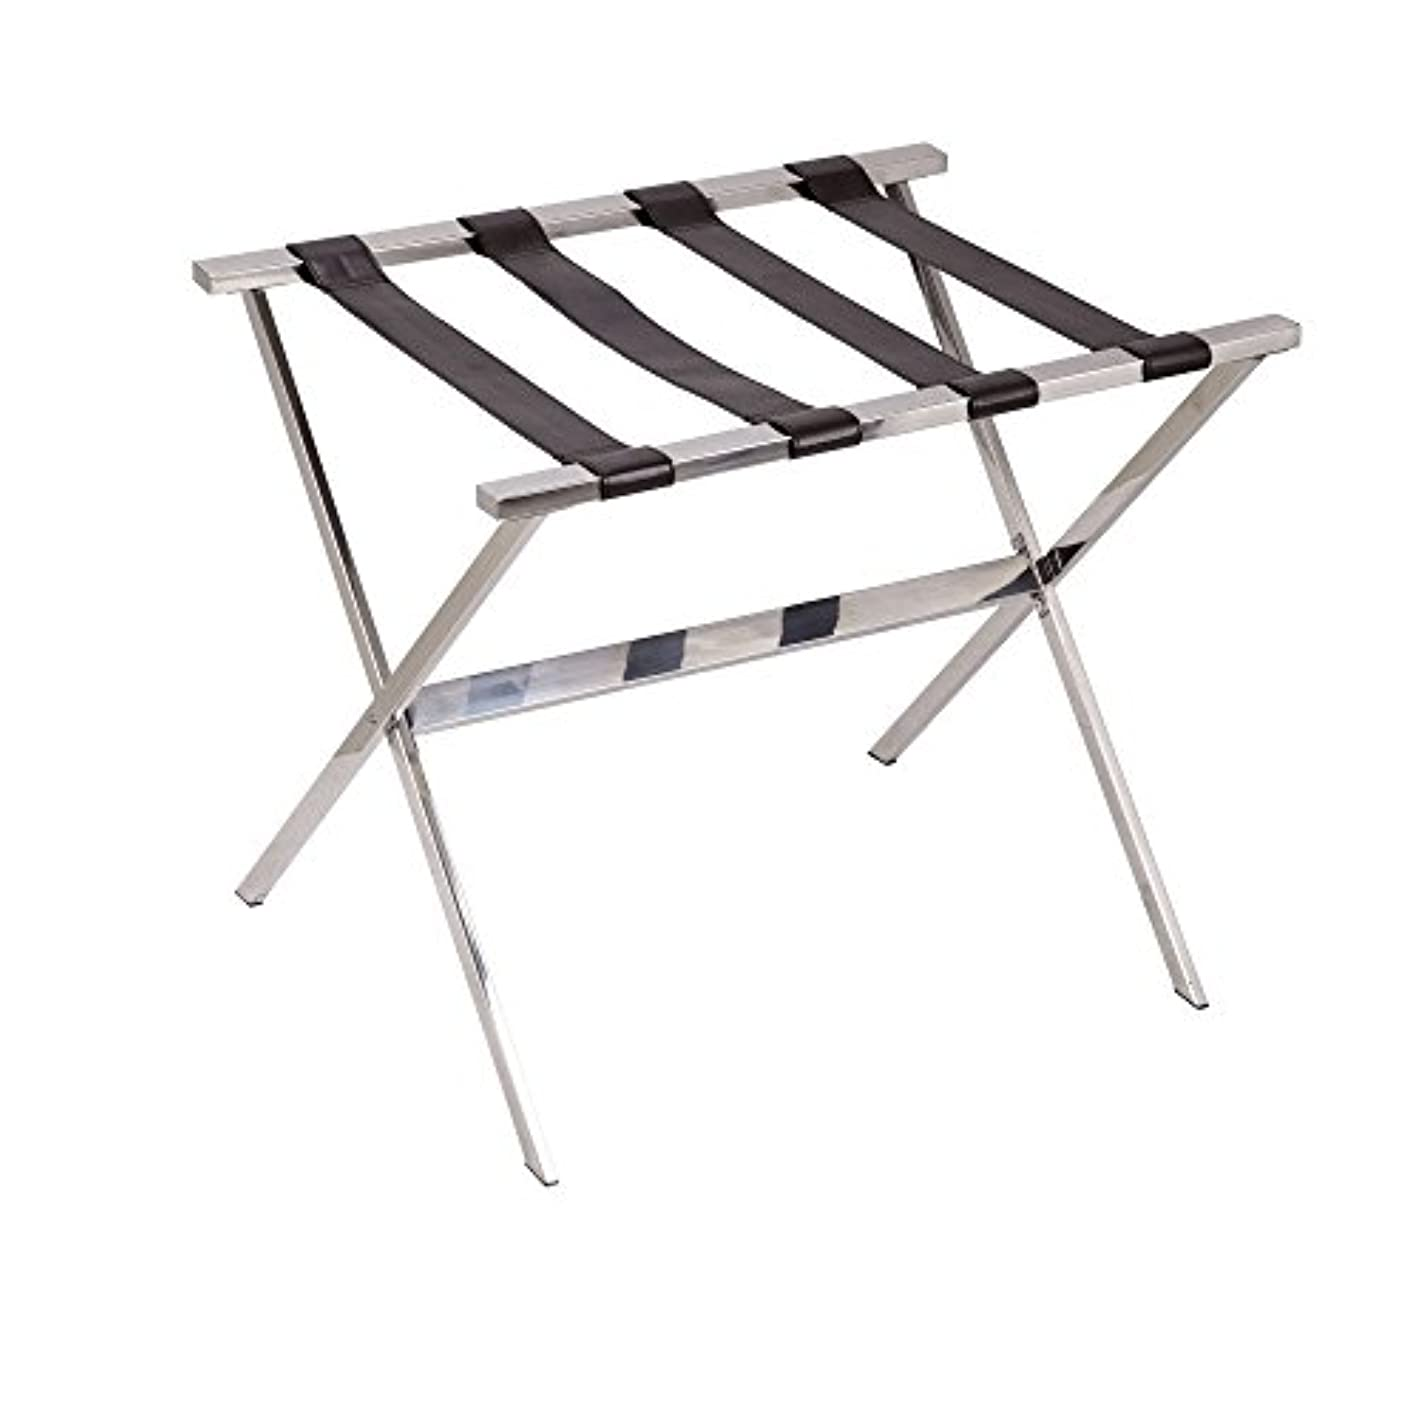 Household Essentials Luggage Rack, Stainless Steel ornjlf1262001